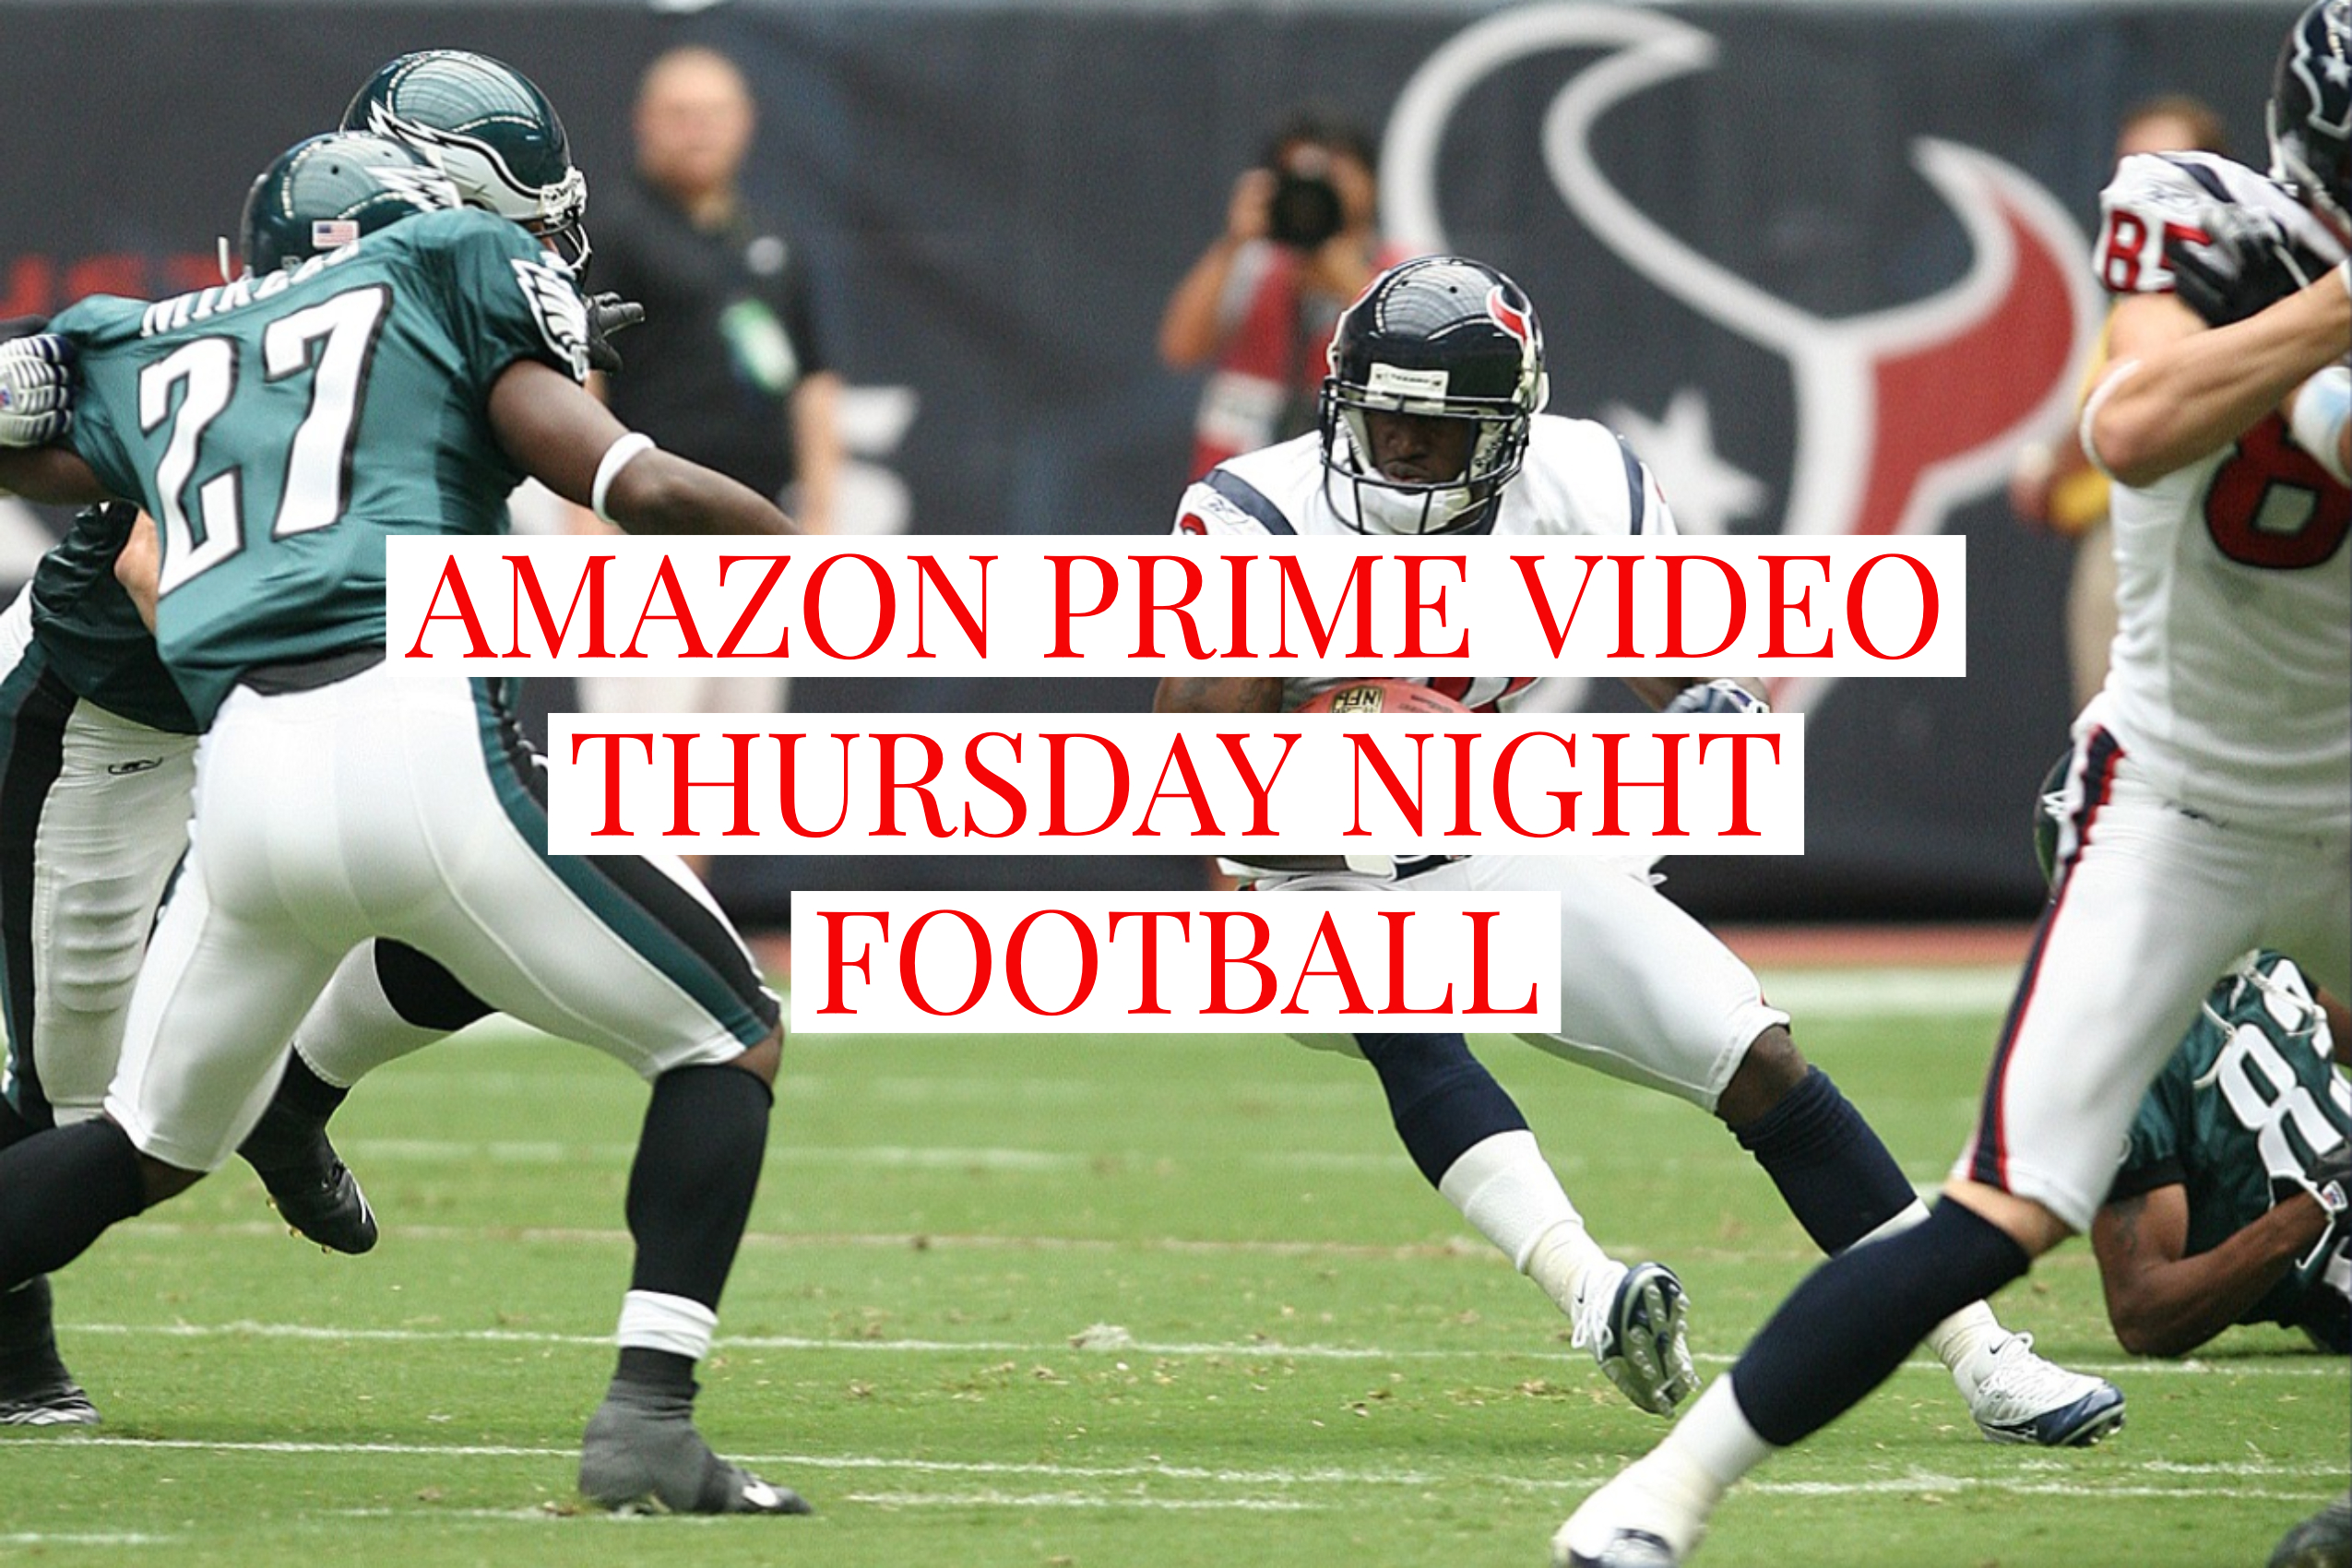 Amazon Prime Video Thursday Night Football: 5 Things to Know